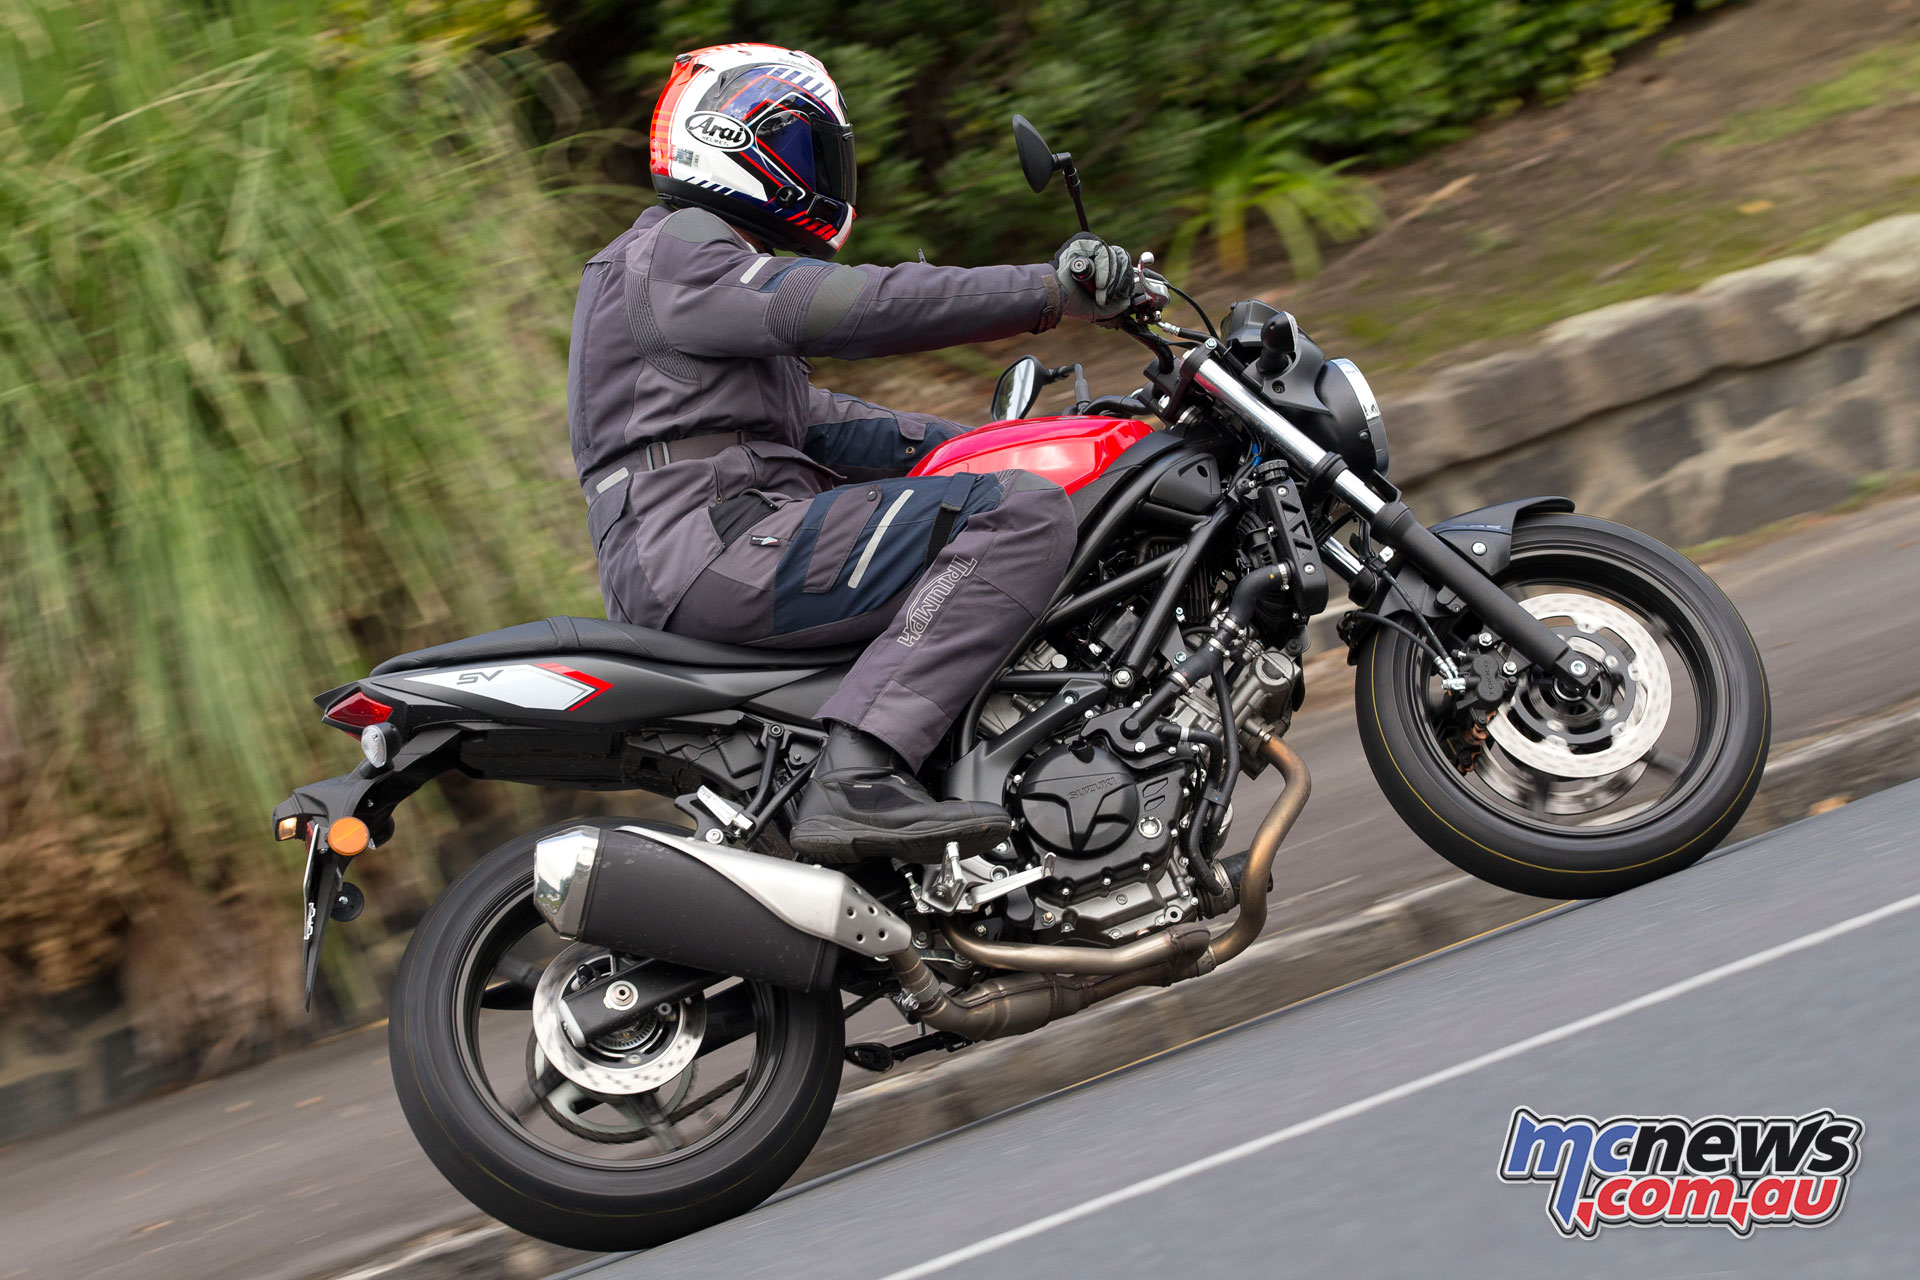 2017 Suzuki SV650 Naked, Entry-Level Motorcycle Review